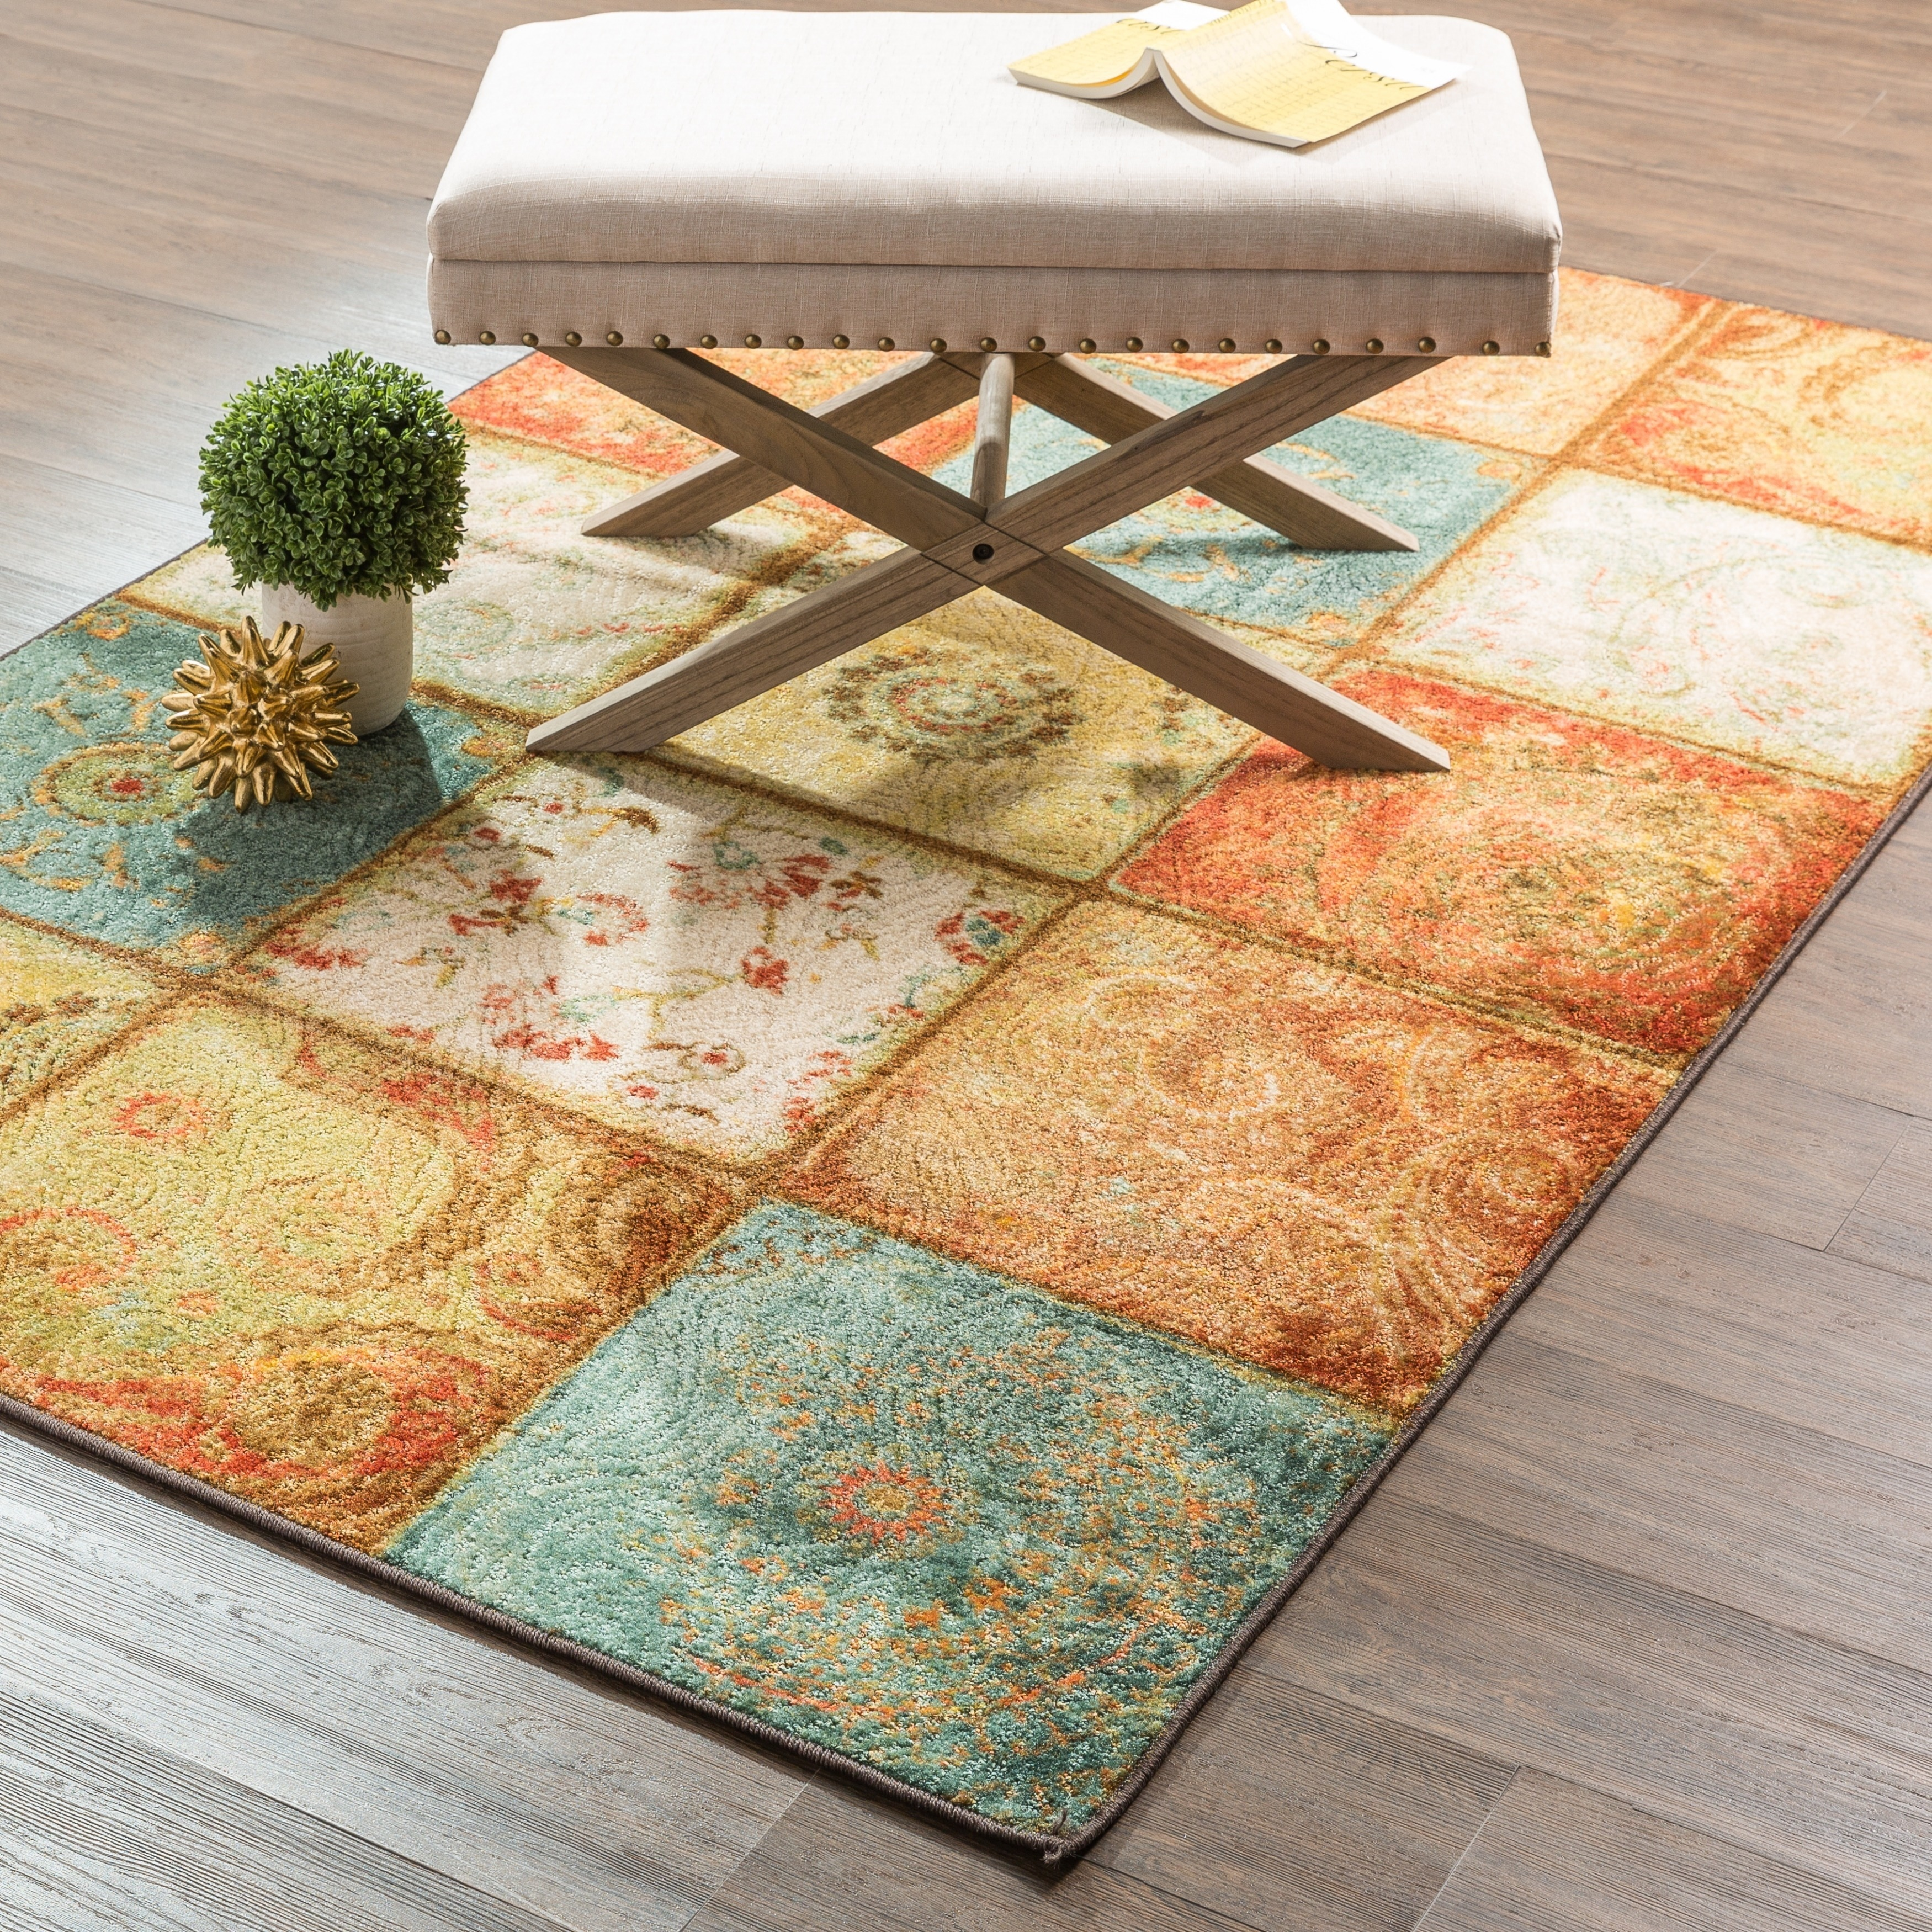 MOHAWK Home City Heritage Multi Accent Rug (2'6 x 3'10) (...